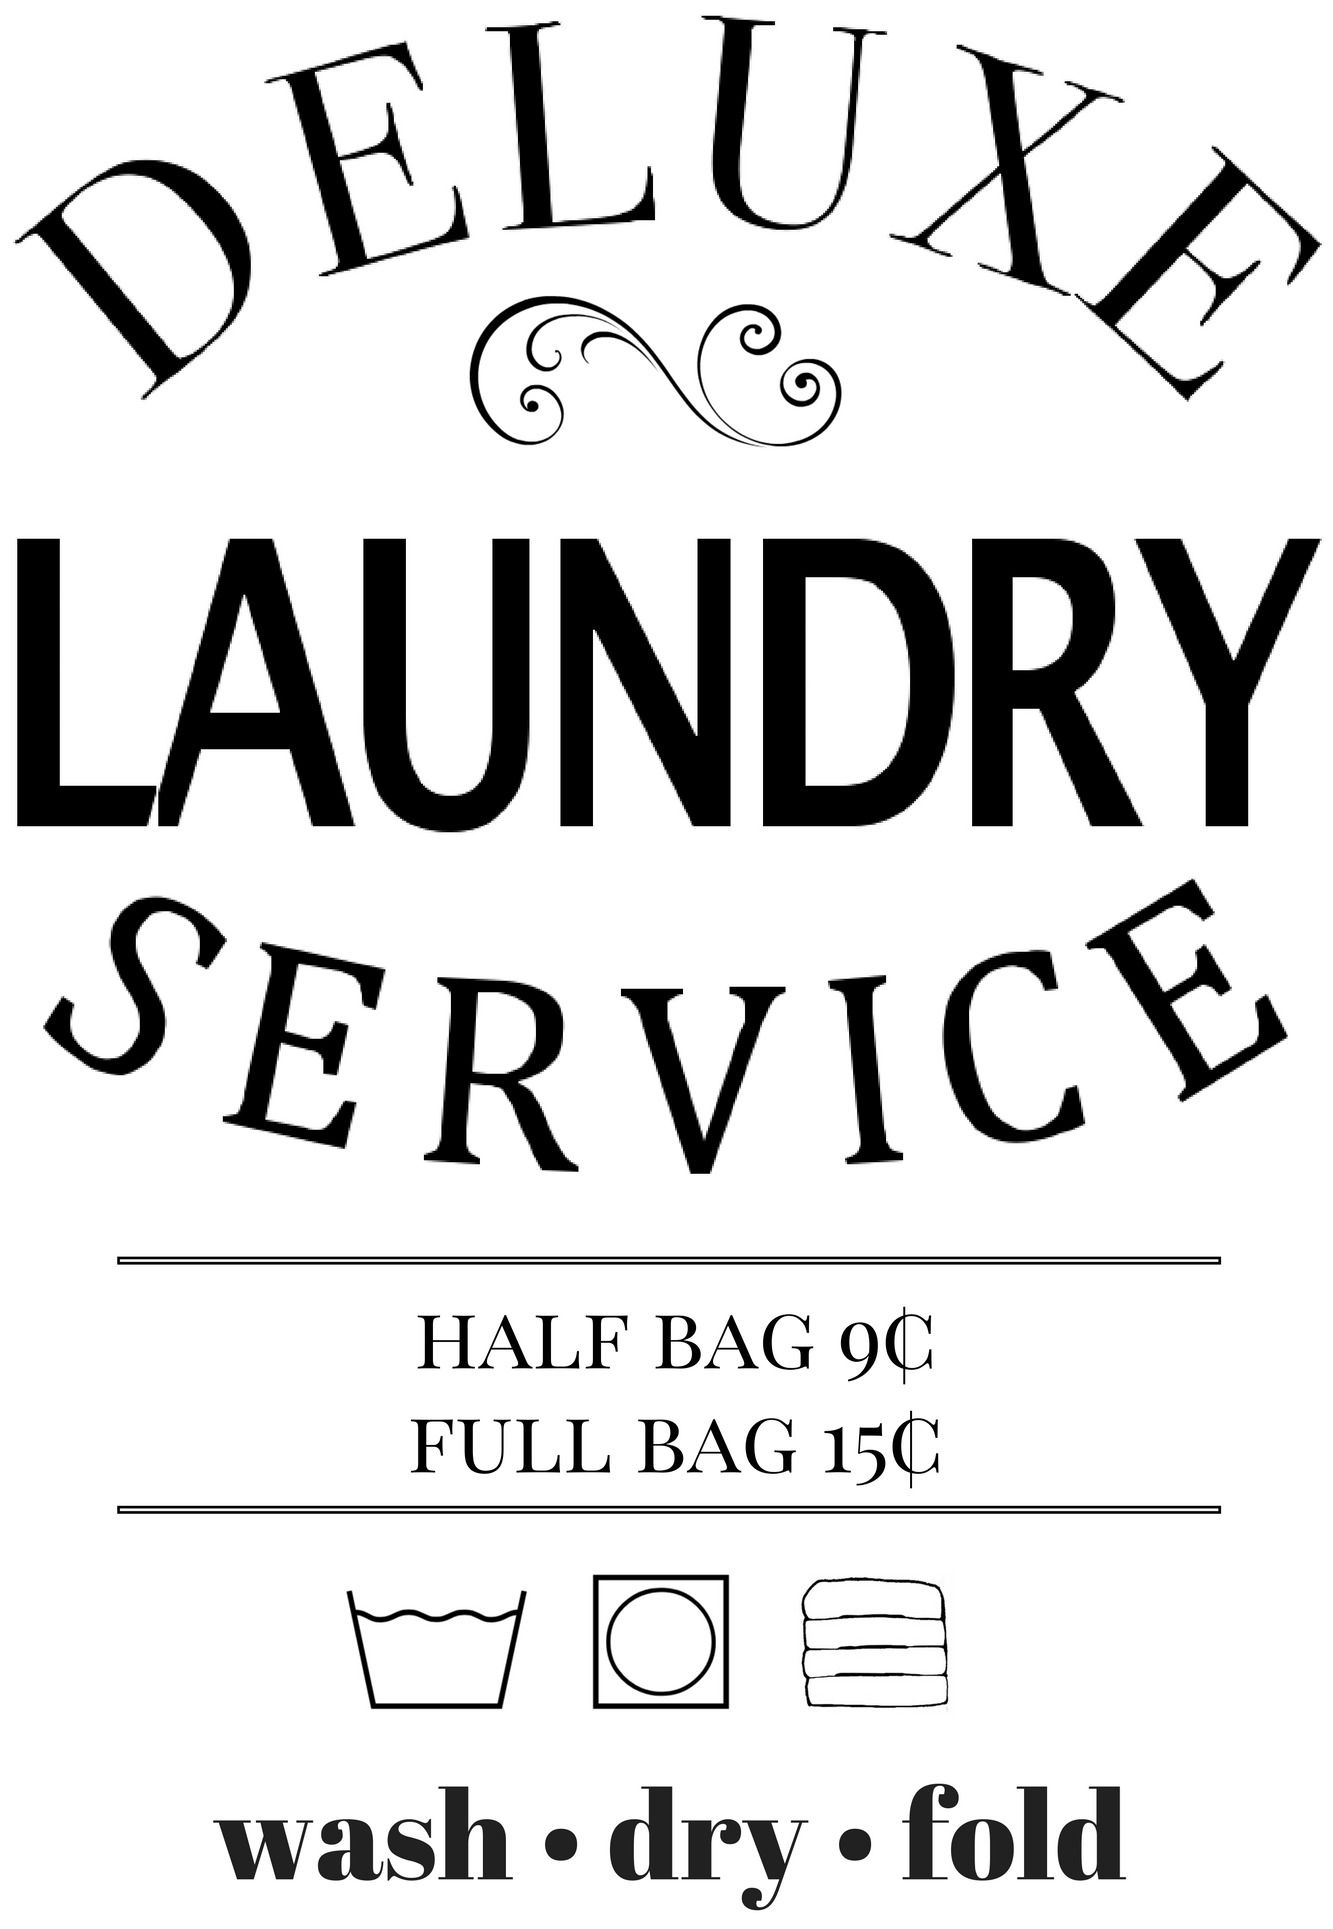 Vintage Laundry Hamper Decal Eclectic Momsense Laundry